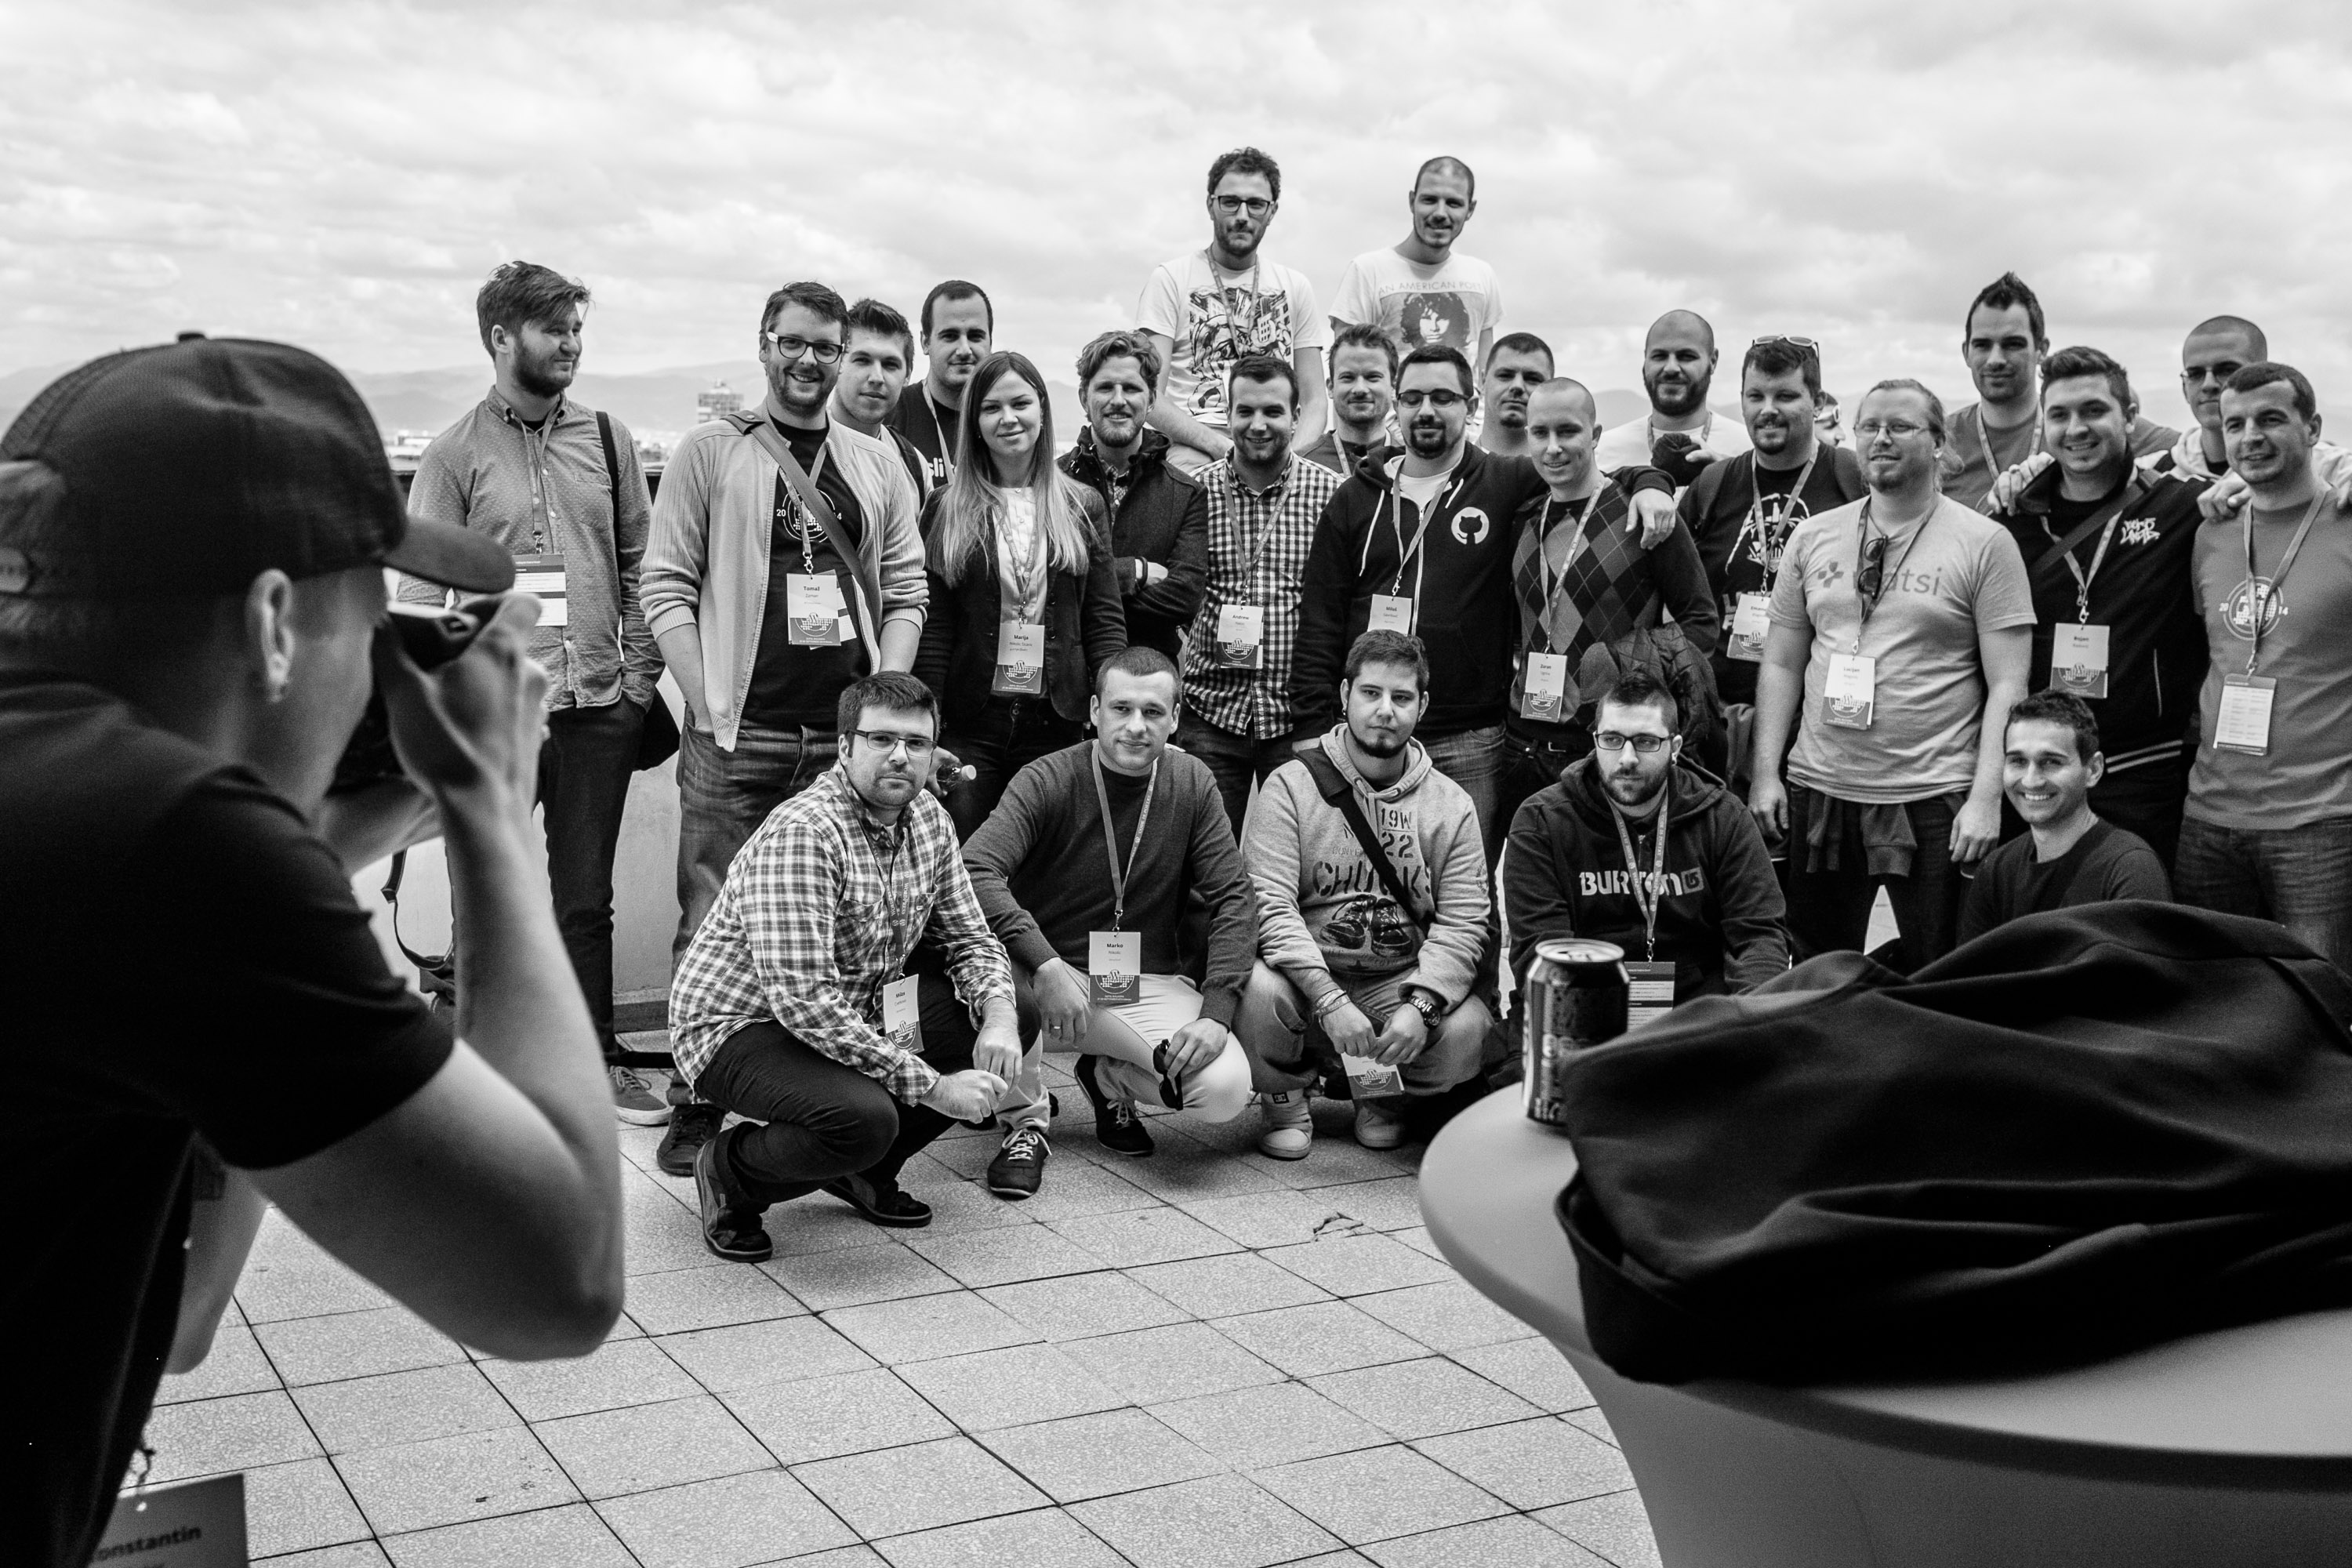 Group photo of the Croatian, Serbian and Slovenian WordPress communities with Matt Mullenweg and Andrew Nacin